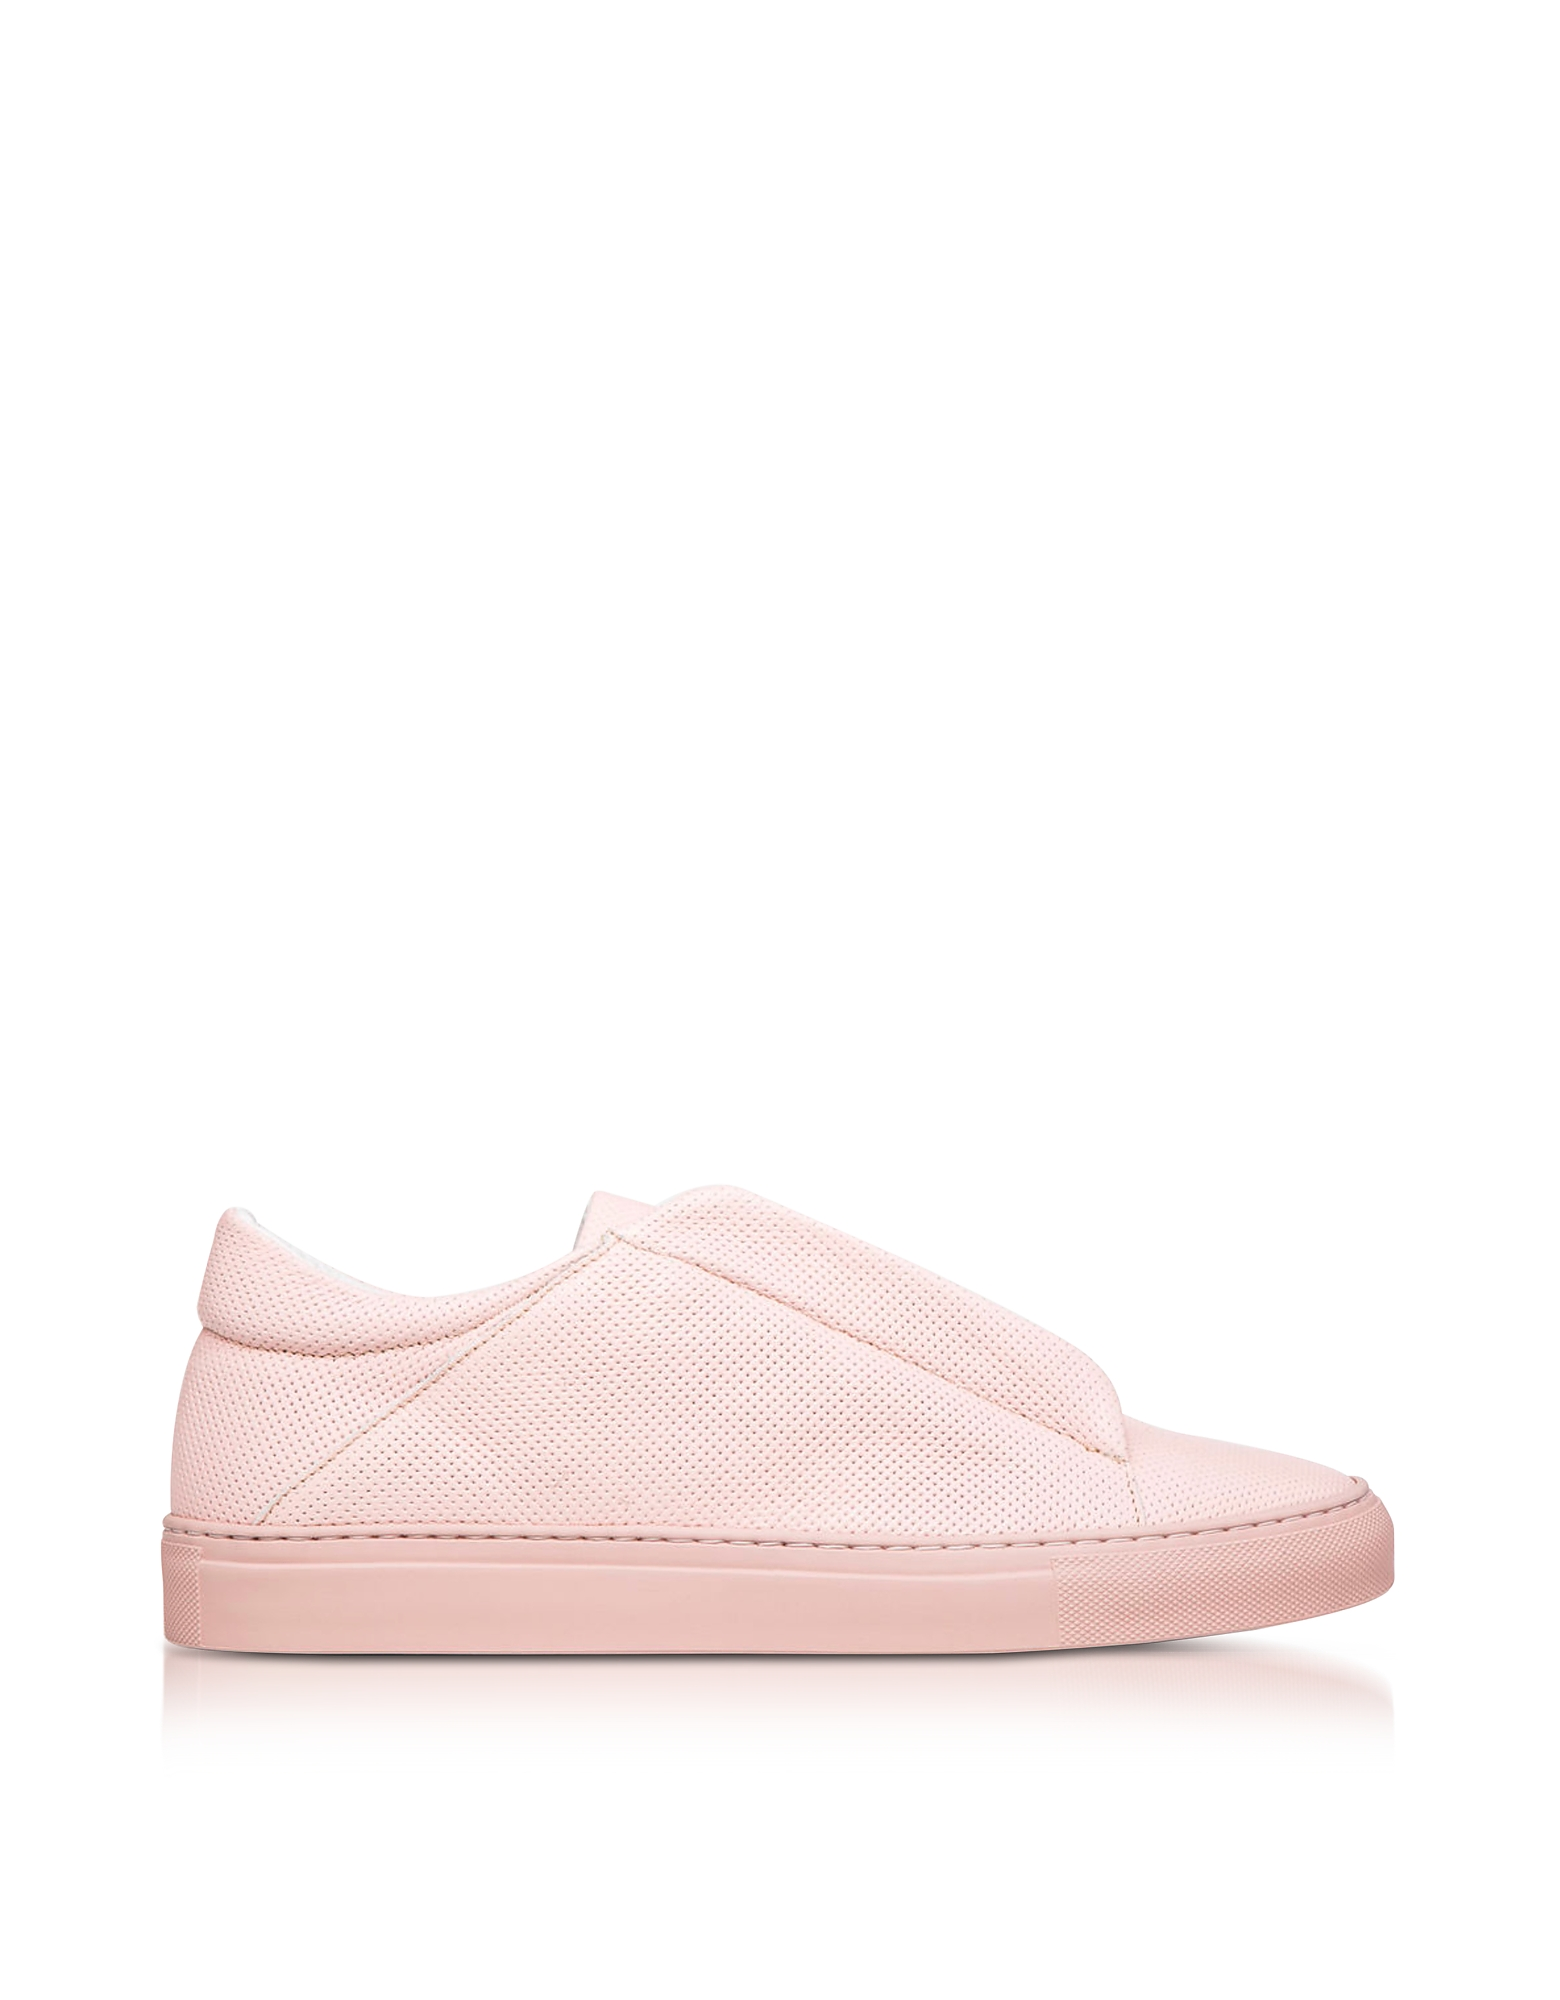 Ylati Shoes, Nerone Pink Perforated Leather Low Top Men's Sneakers